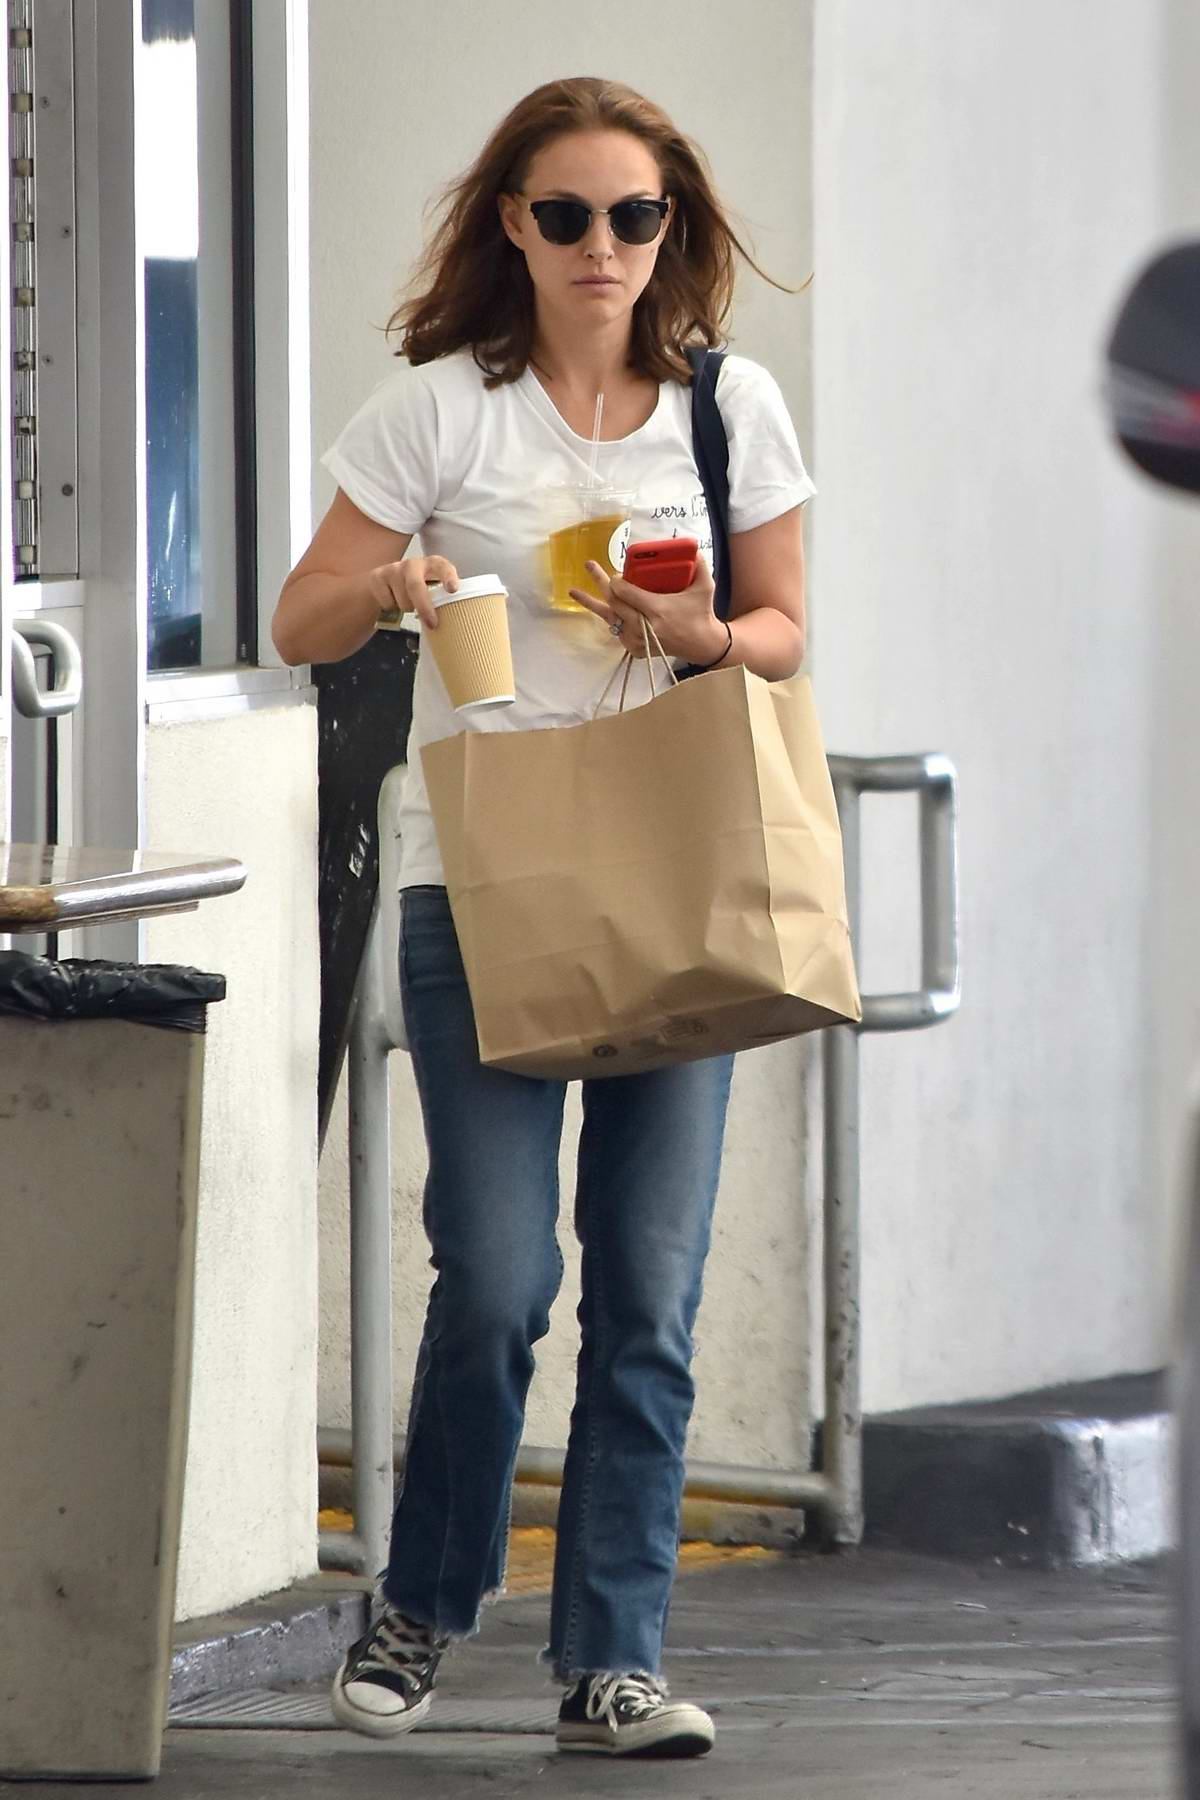 Natalie Portman grabs lunch at M Cafe in Beverly Hills, Los Angeles